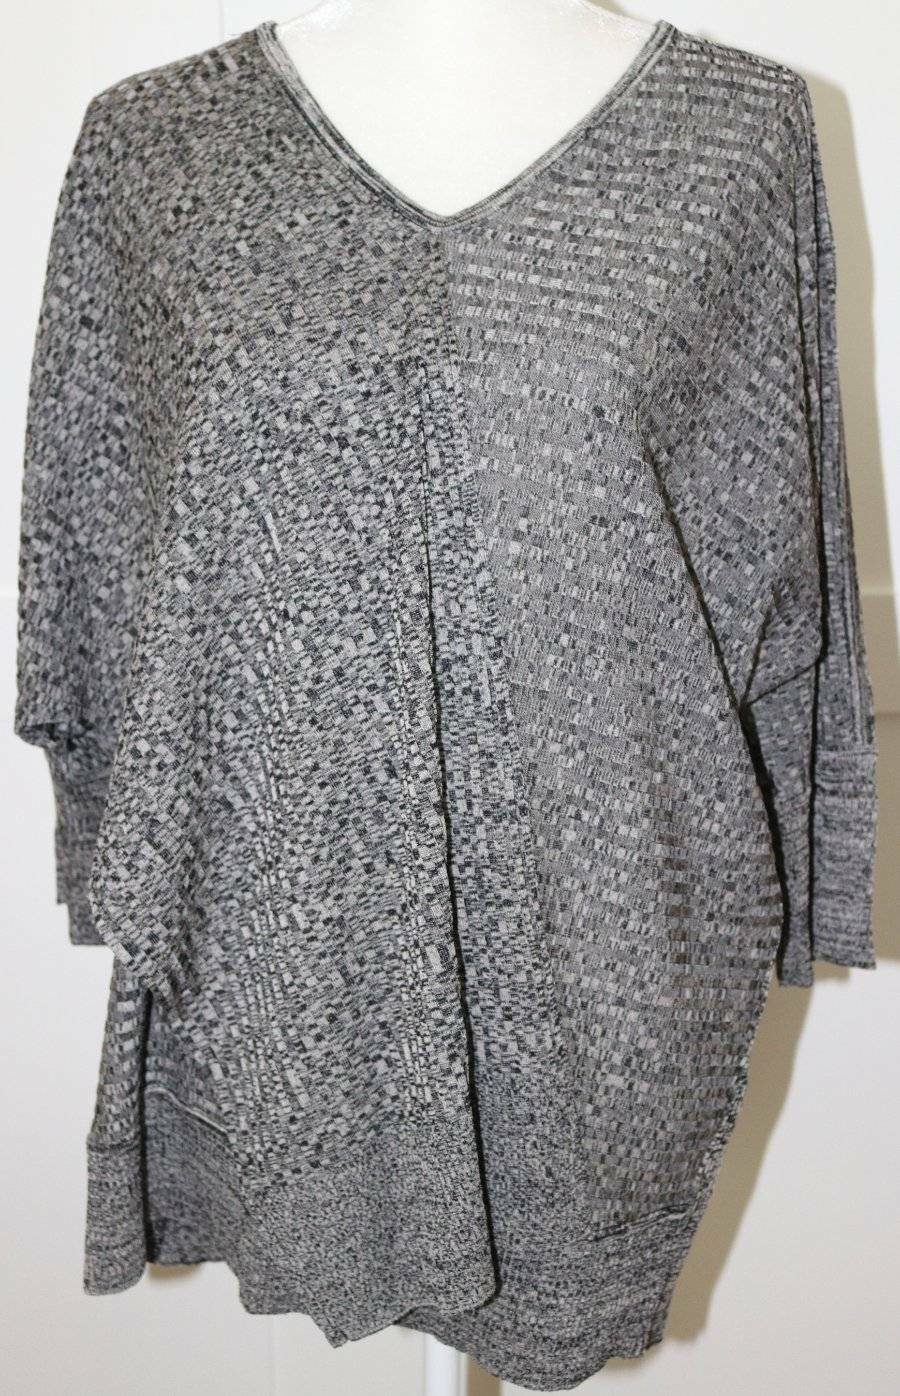 Exclusively Misook grau schwarz Draped Top Tunic Größe Small